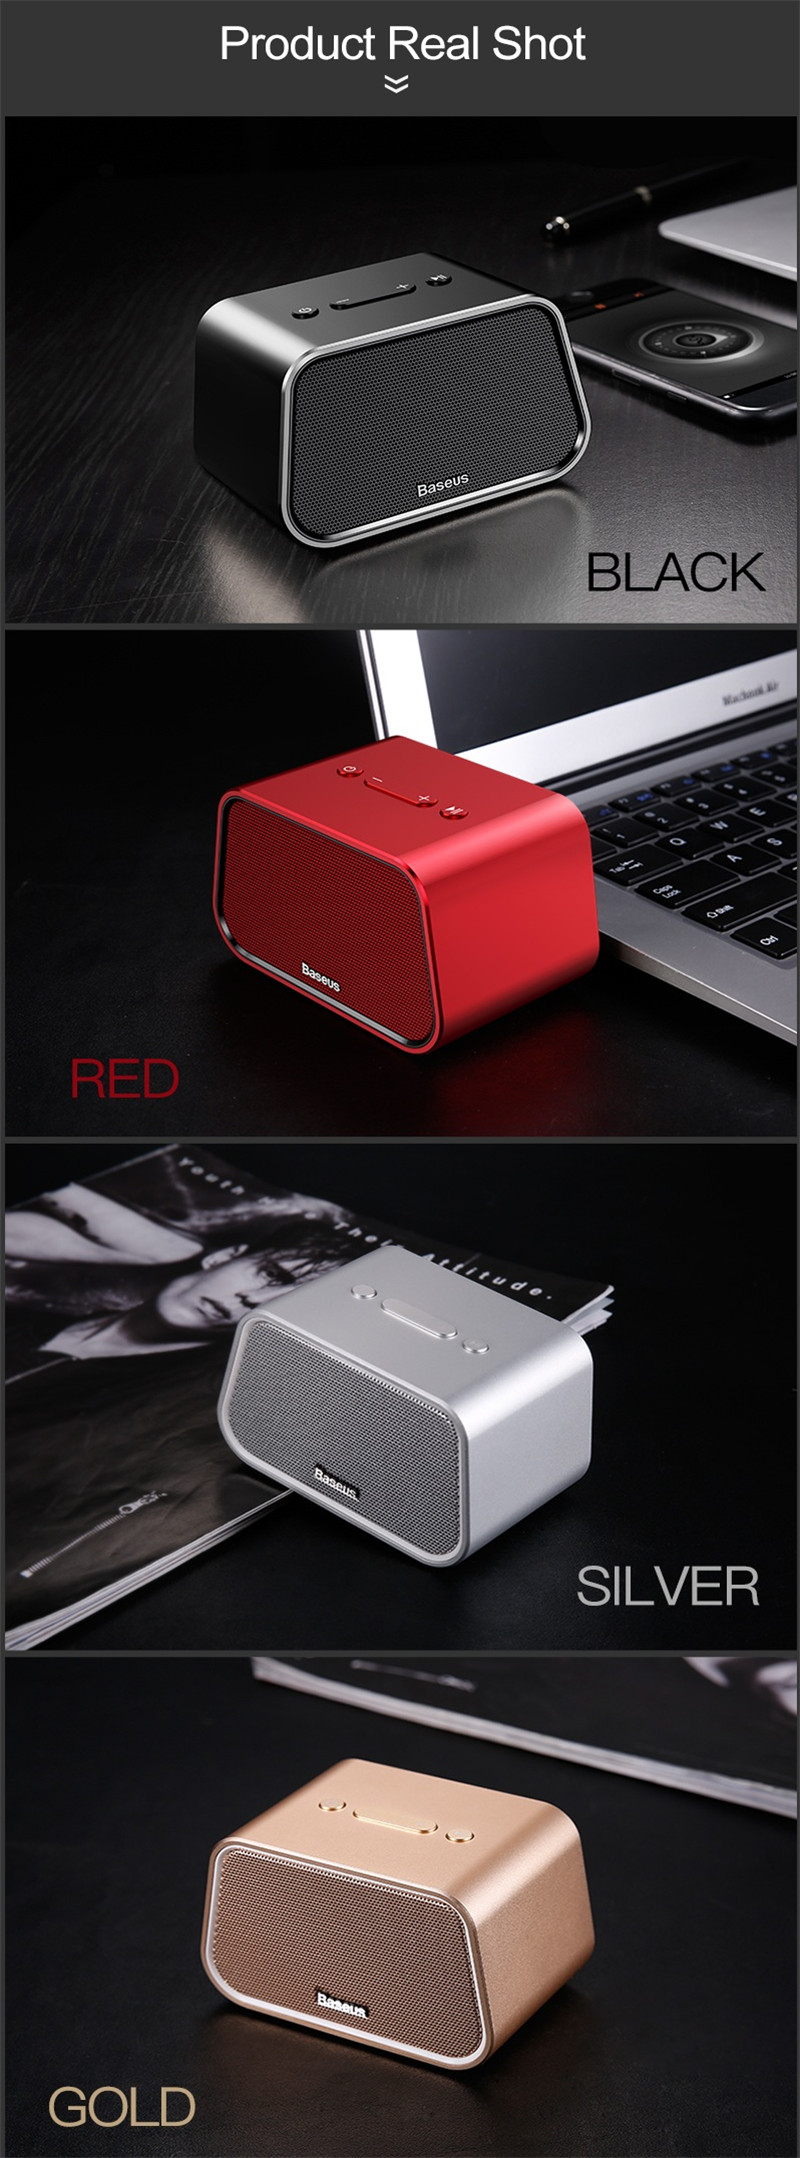 Baseus Encok E02 Mini Portable Trapezoid 1500mAh Wireless bluetooth V4.2 Speaker Audio TF Card